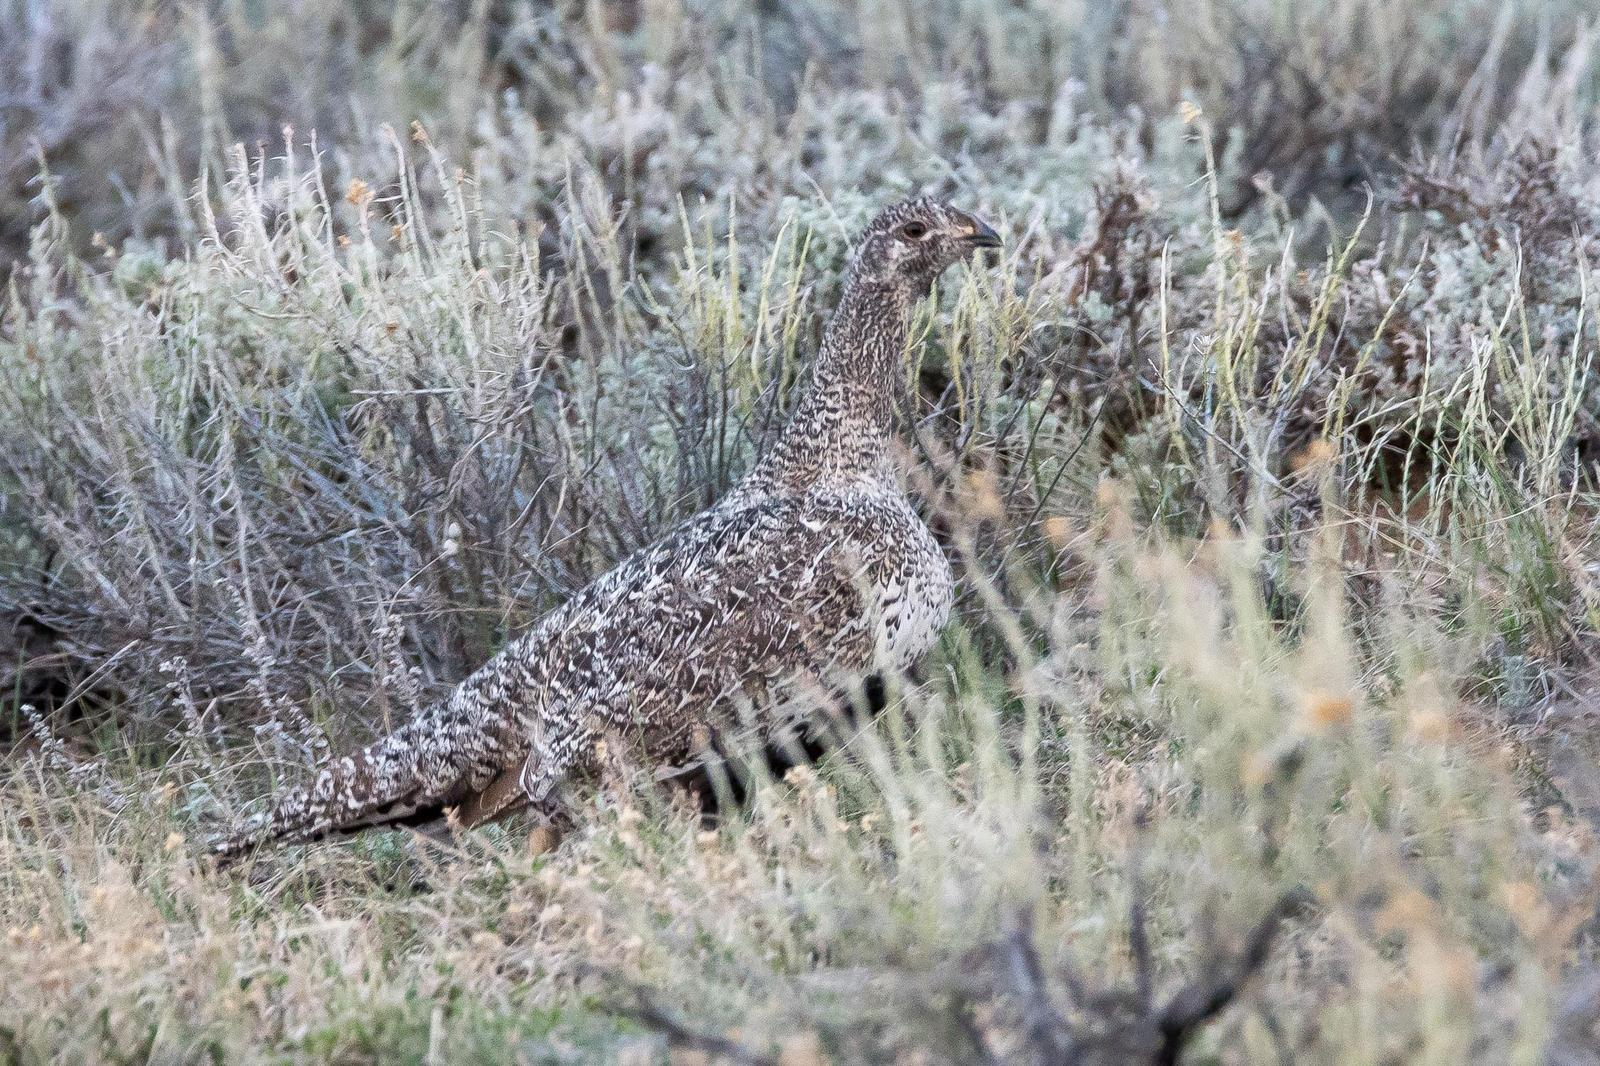 Greater Sage-Grouse Photo by Gerald Hoekstra